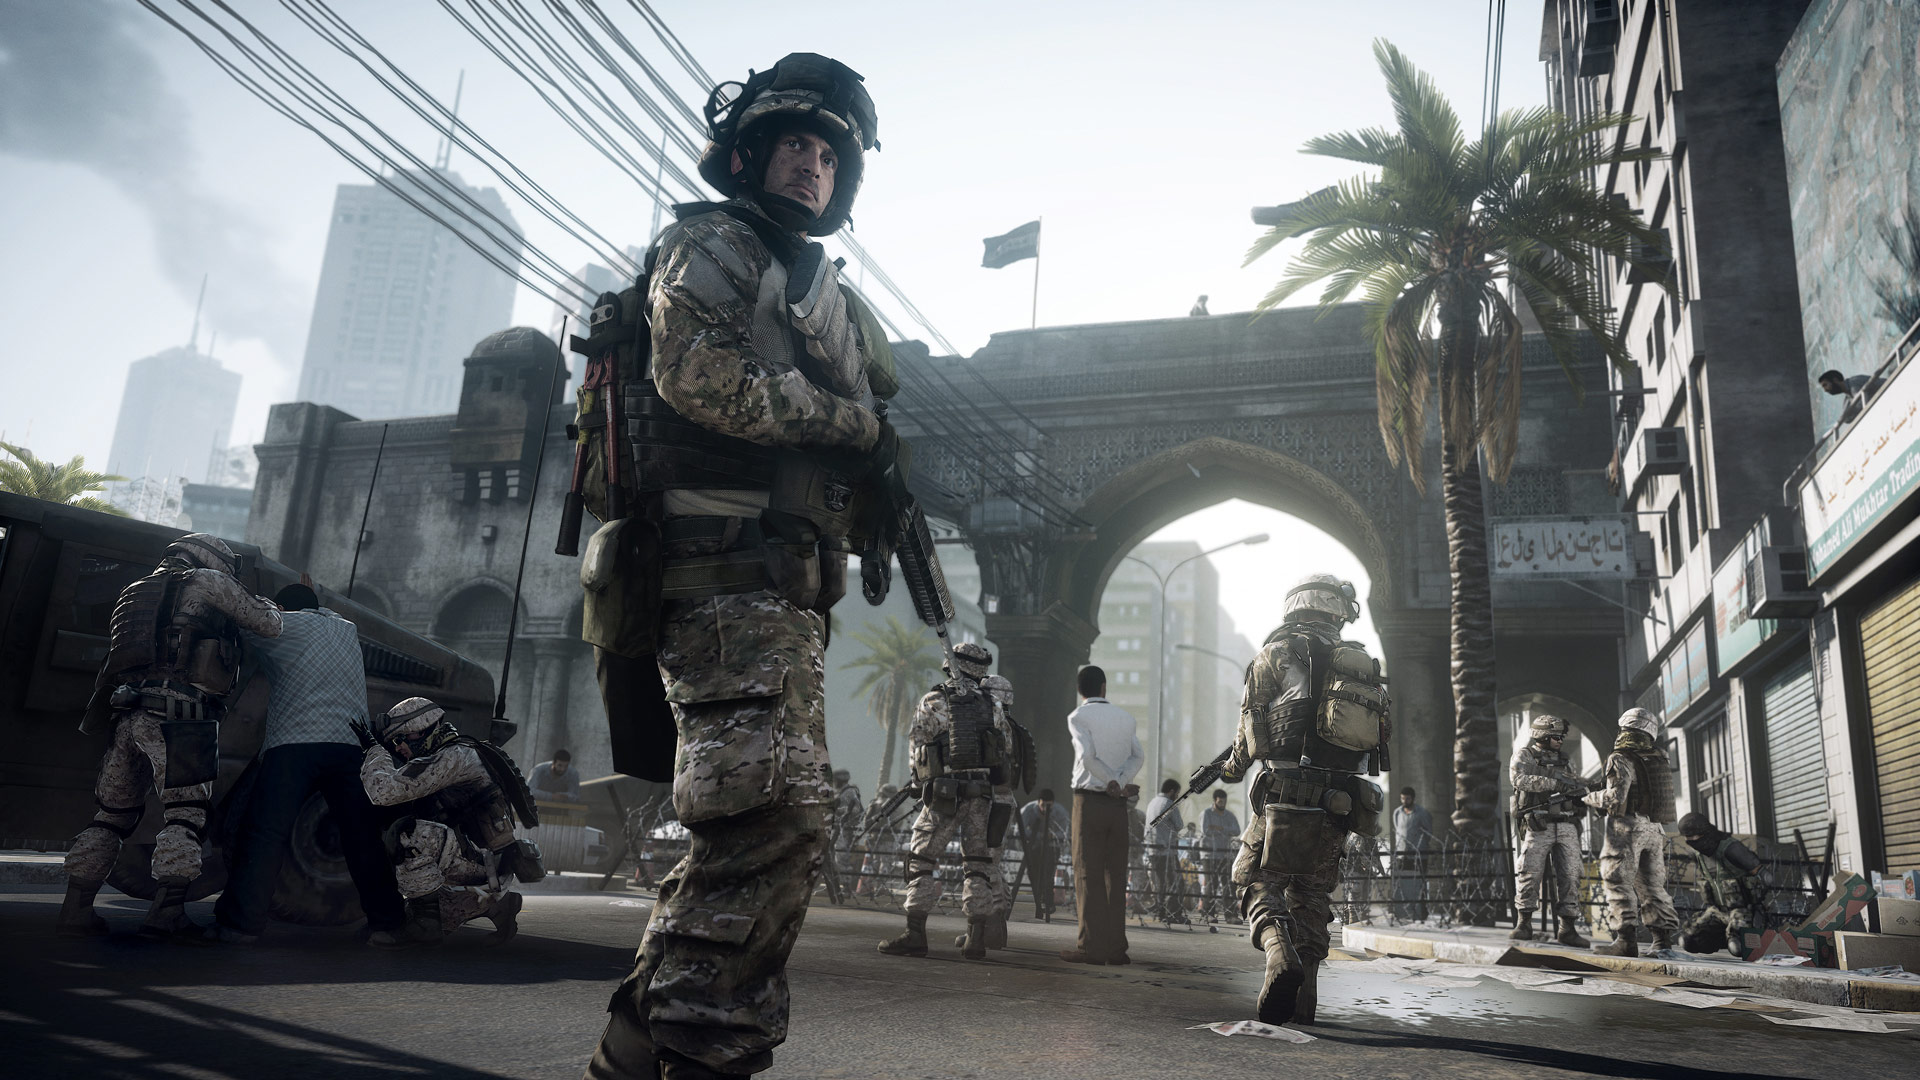 EA is having a big sale on Origin, including Battlefield 3 for 99 cents